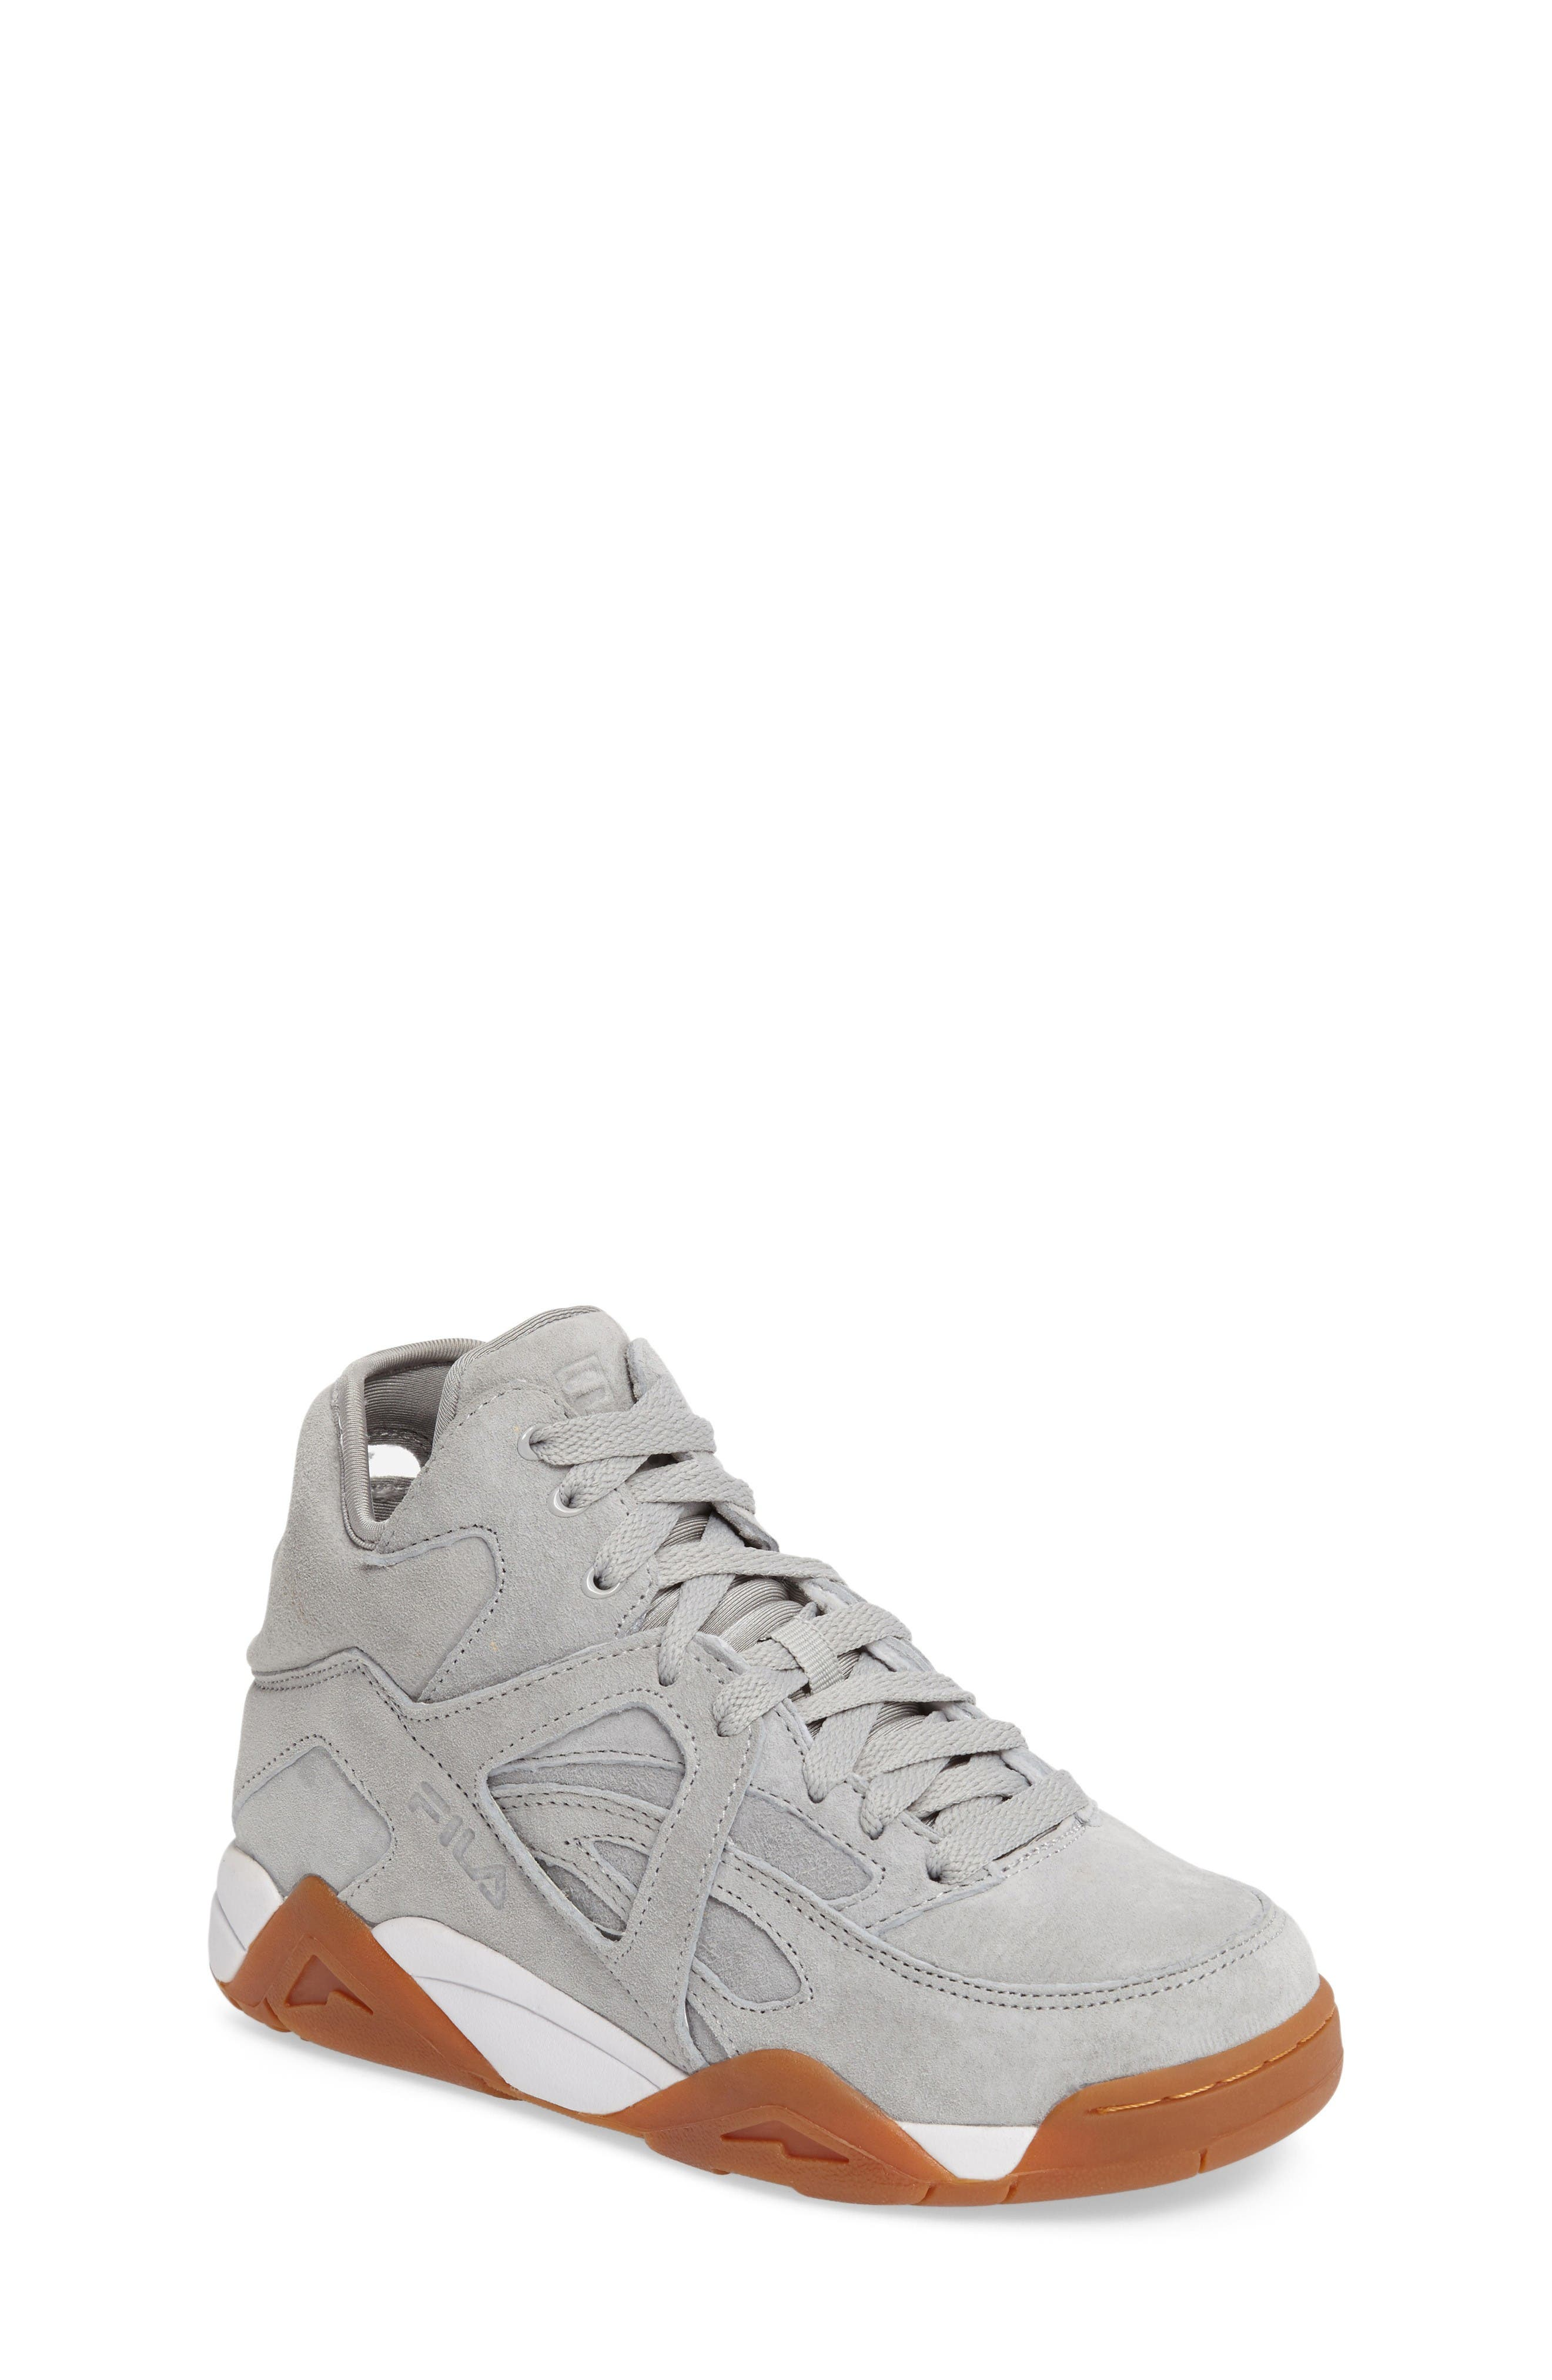 The Cage High Top Sneaker,                             Main thumbnail 1, color,                             High Rise Nubuck Leather